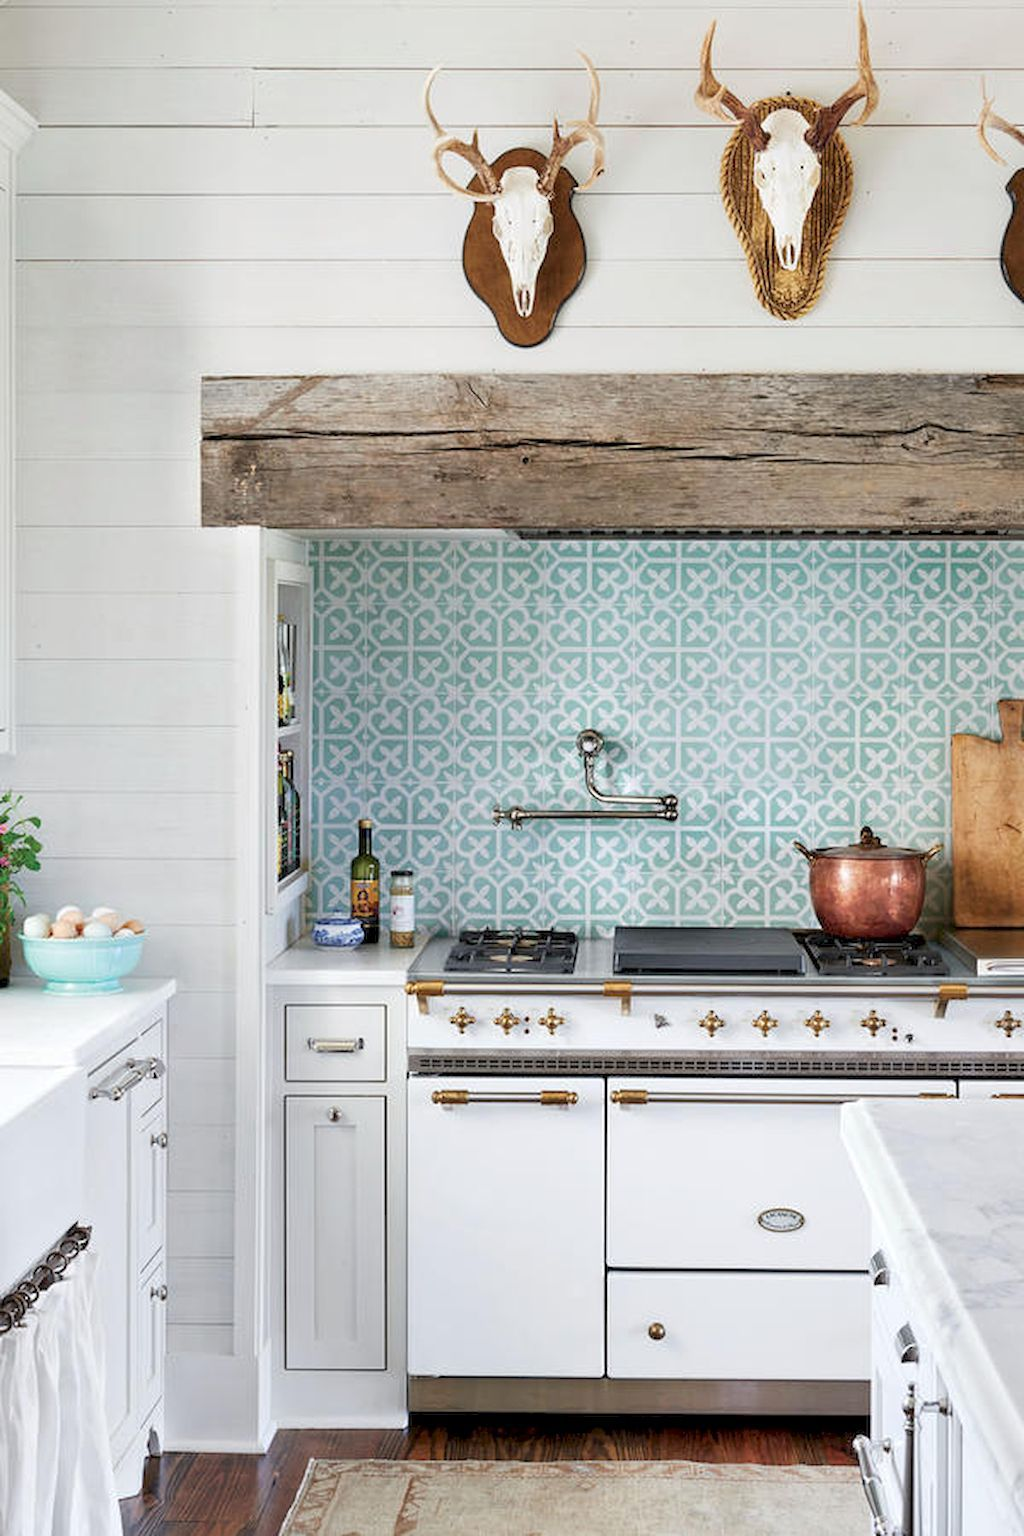 60 fancy farmhouse kitchen backsplash decor ideas farmhouse kitchen backsplash farmhouse on farmhouse kitchen backsplash id=60197